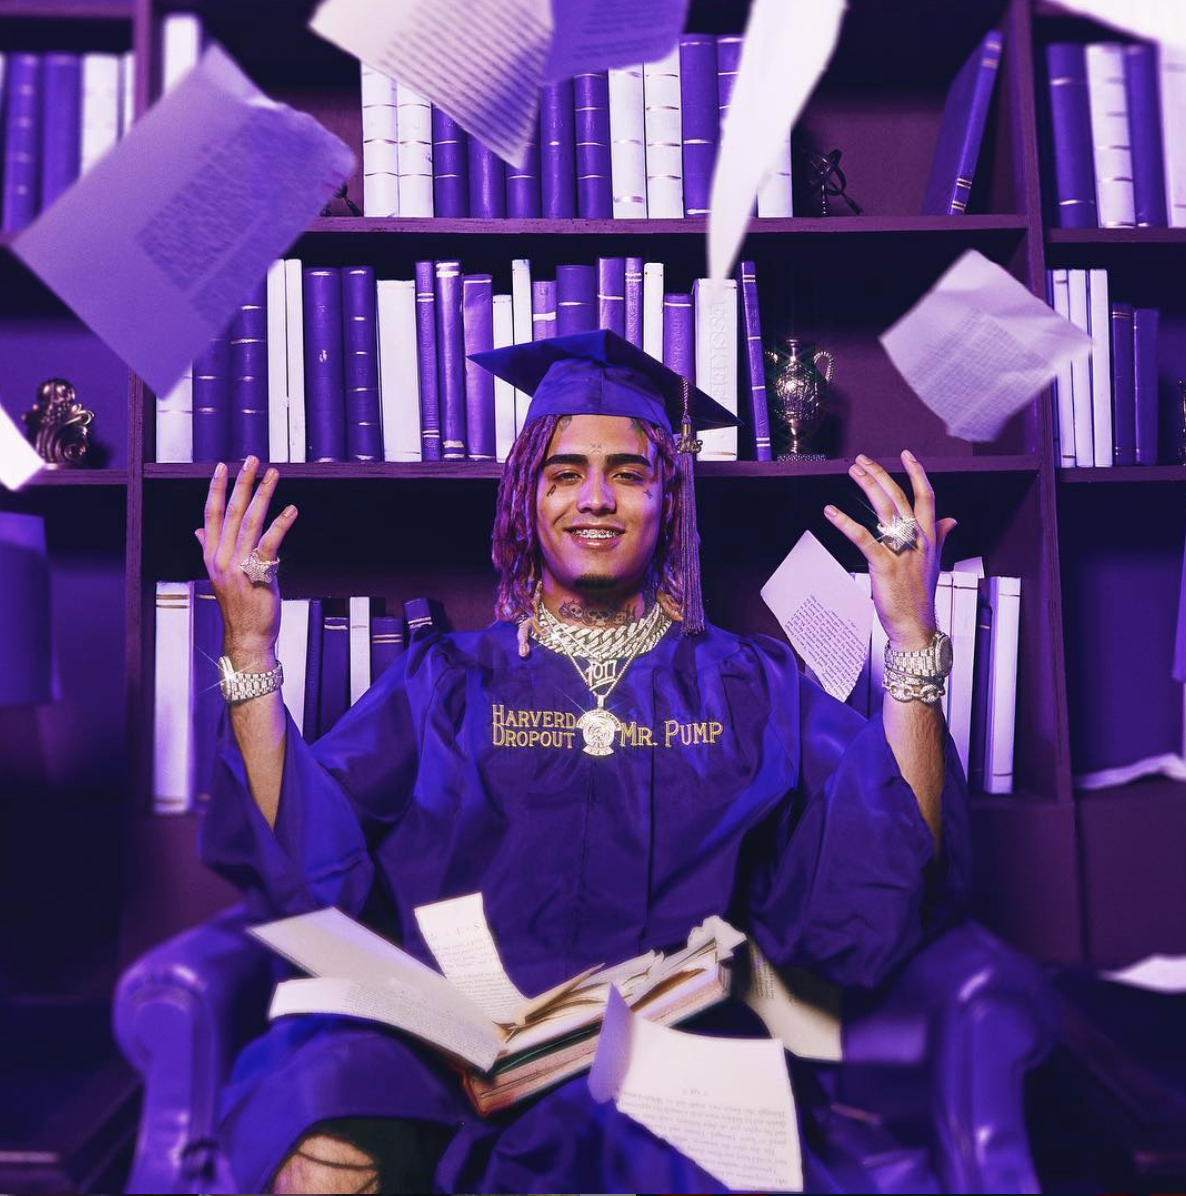 93e41d744 Lil Pump is a Colombian-American 18-year-old rapper from Florida who